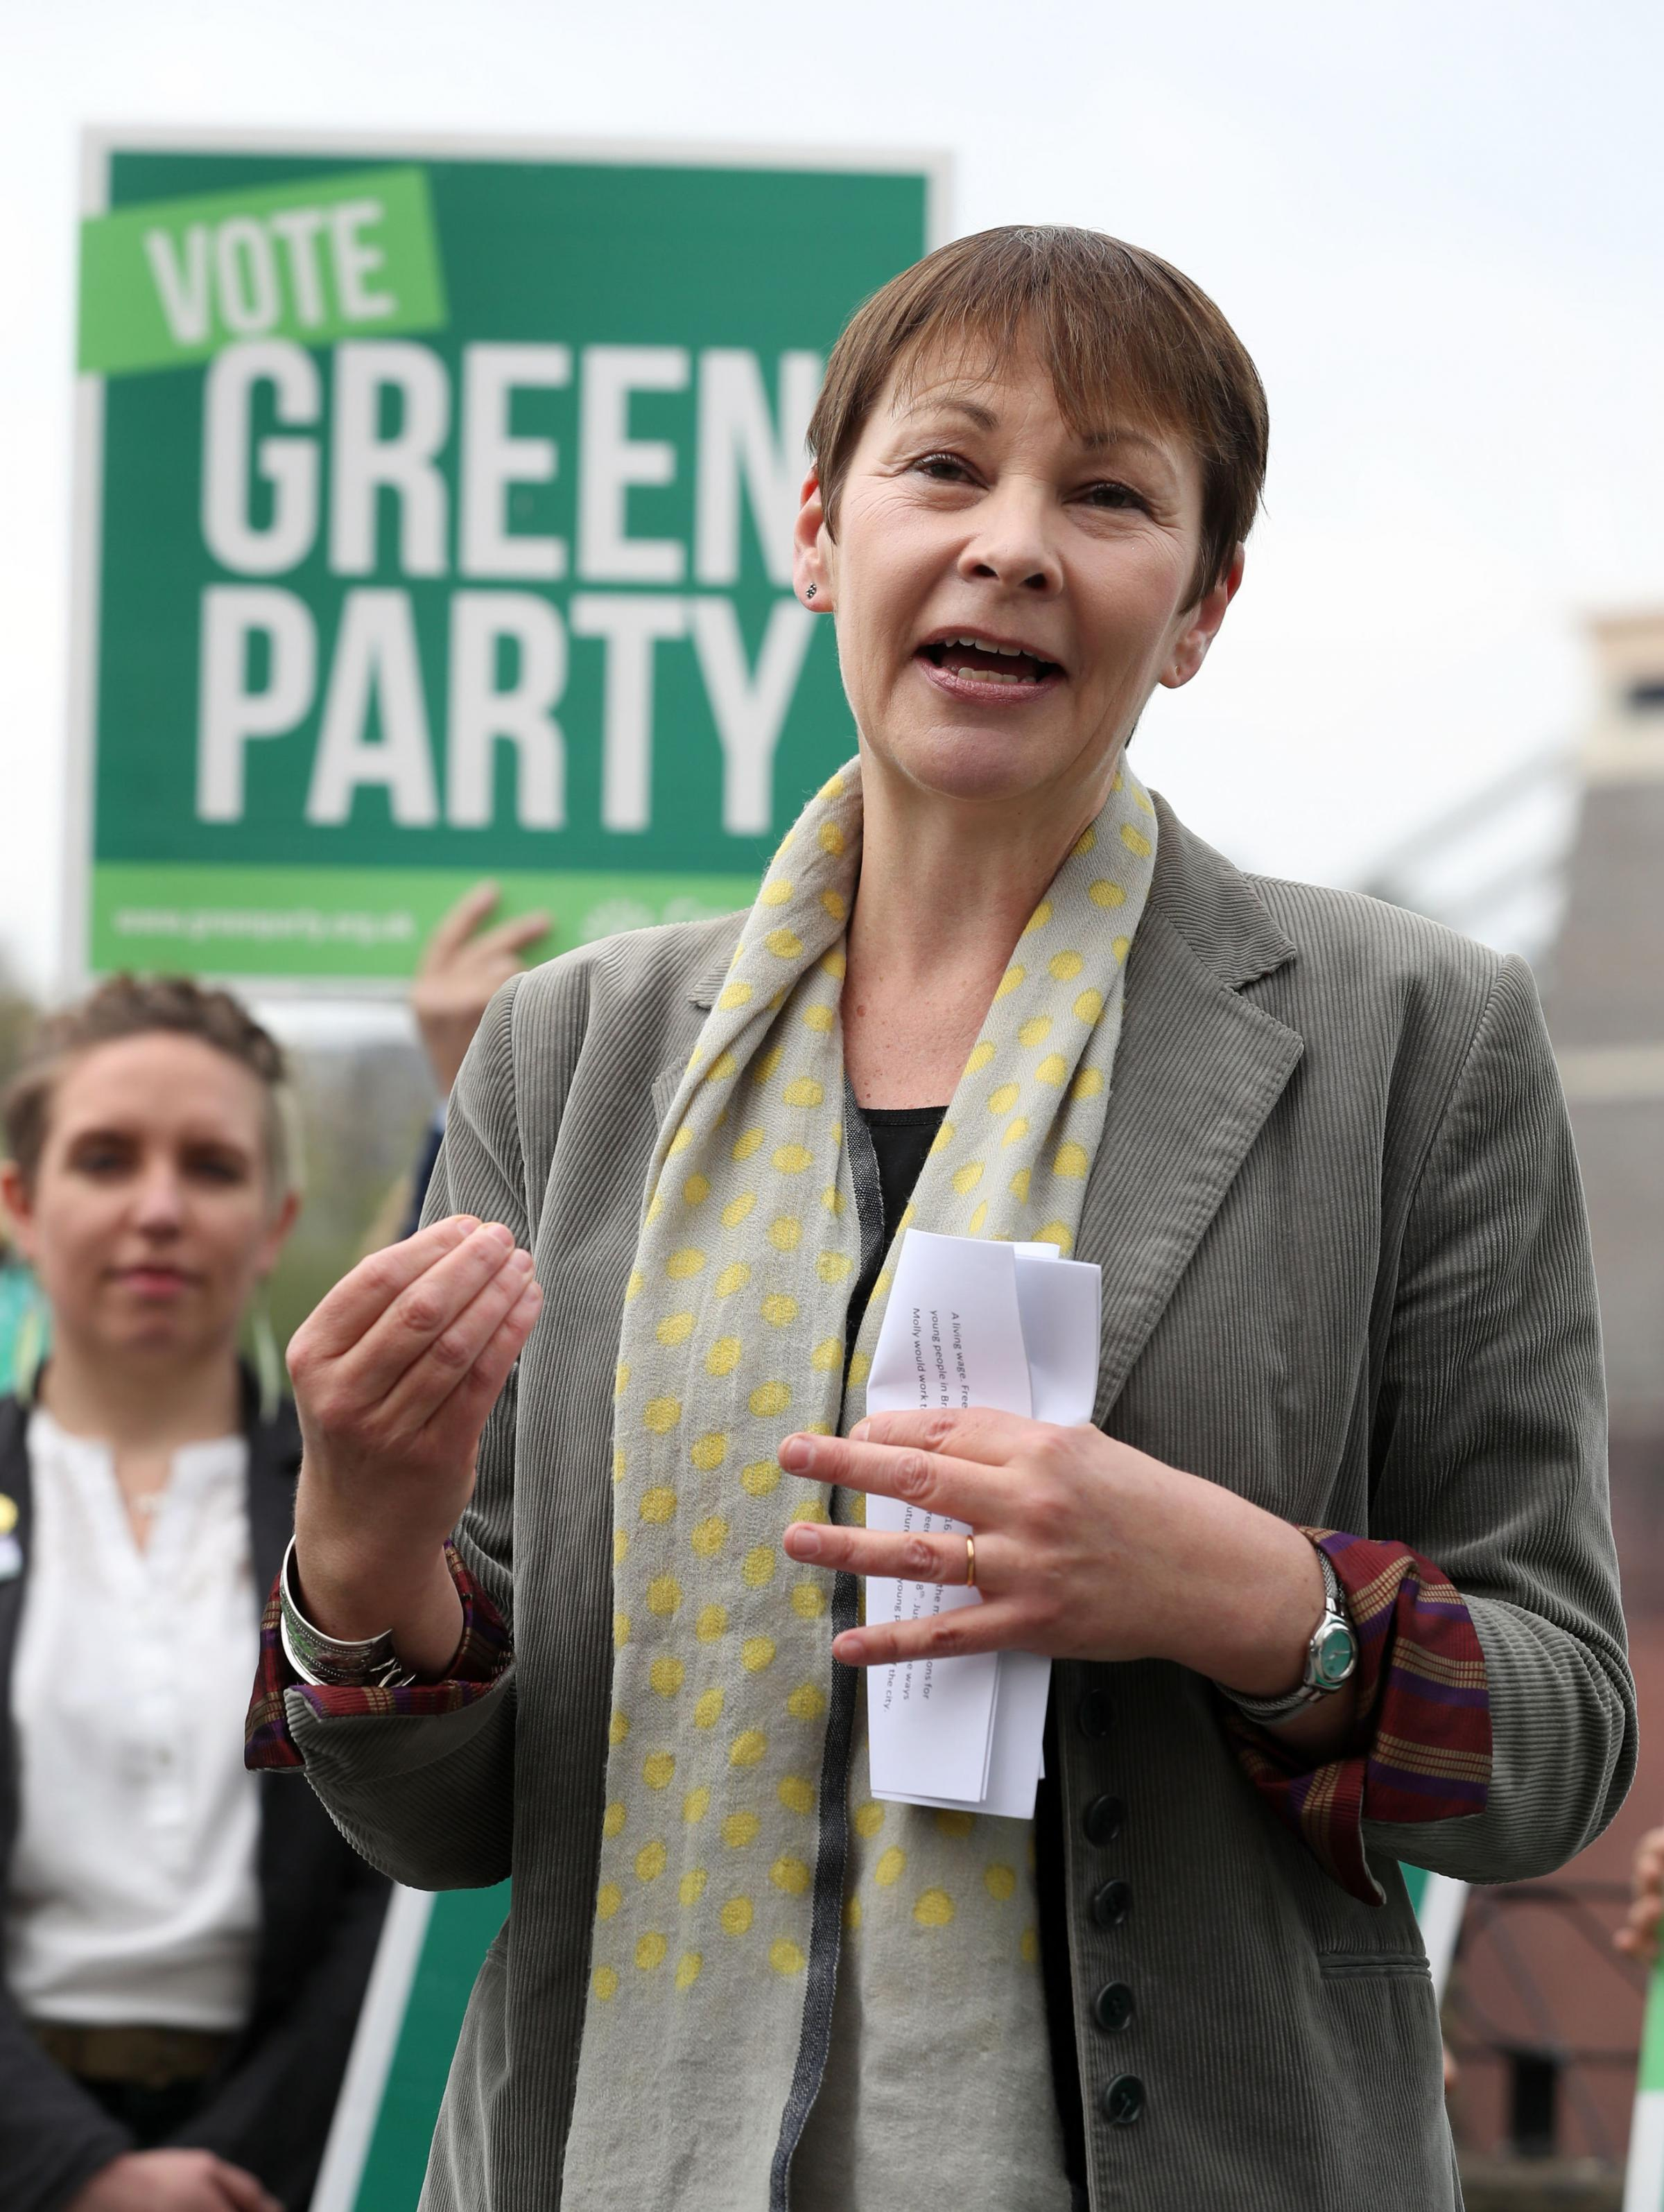 The party are promising joined-up thinking and cleaner air